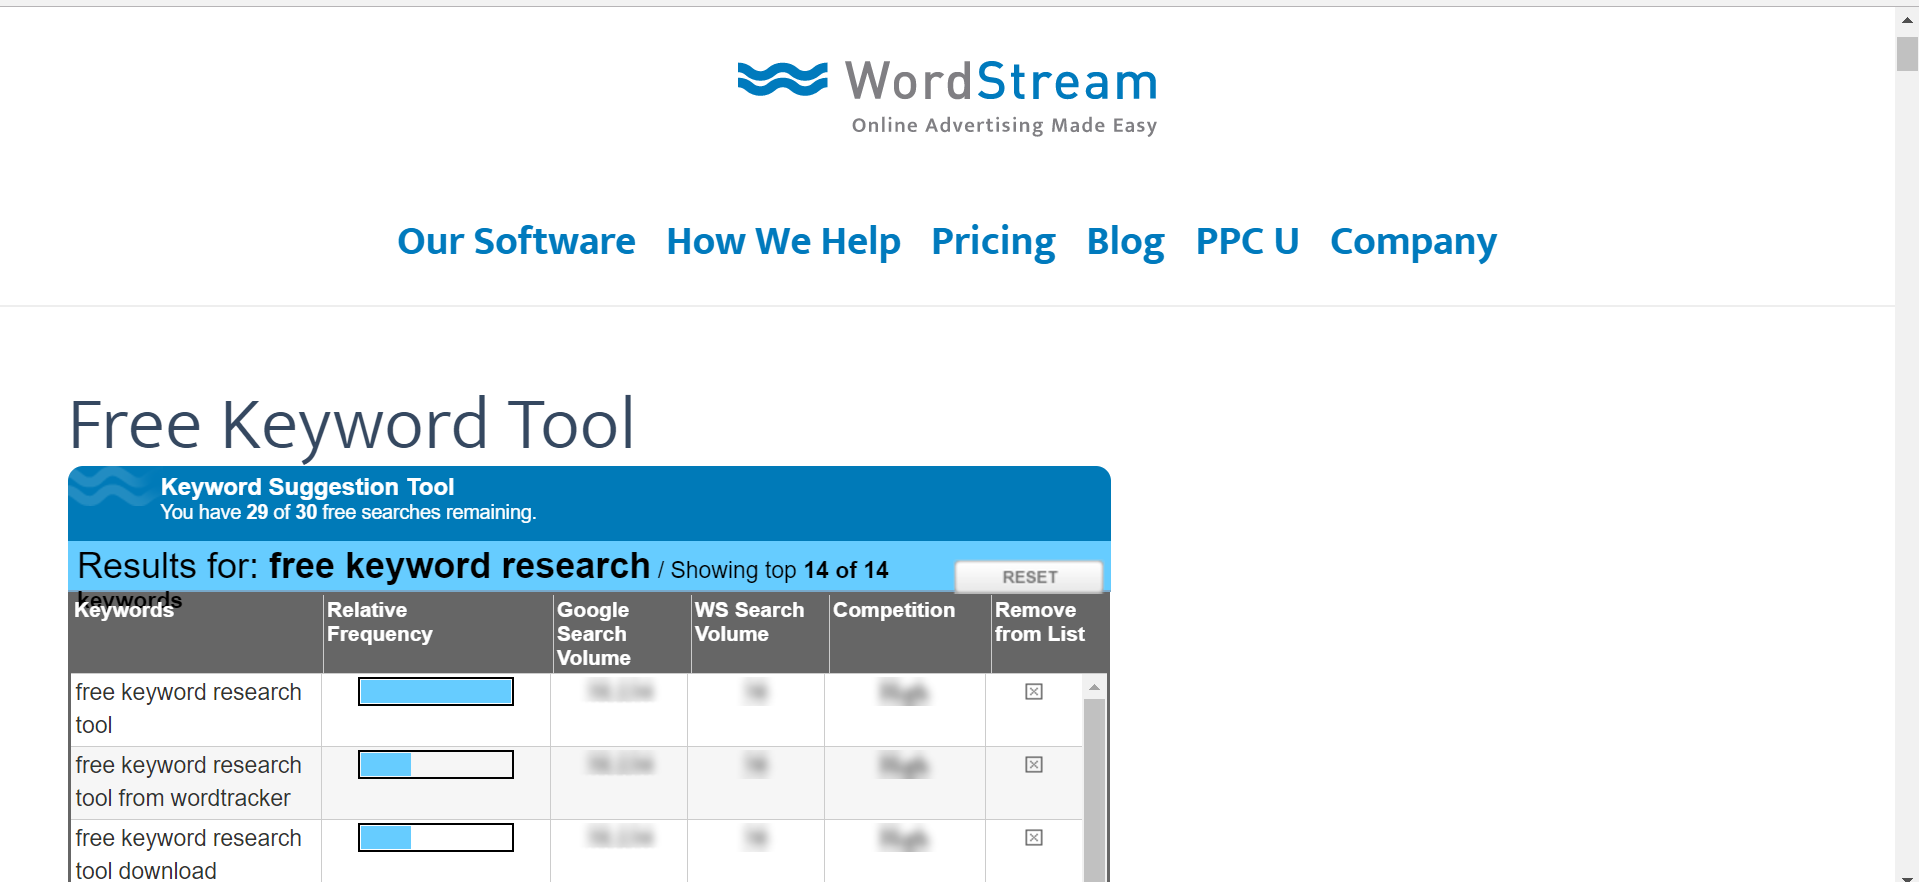 6 Top Free Keyword Research Tools of 2017